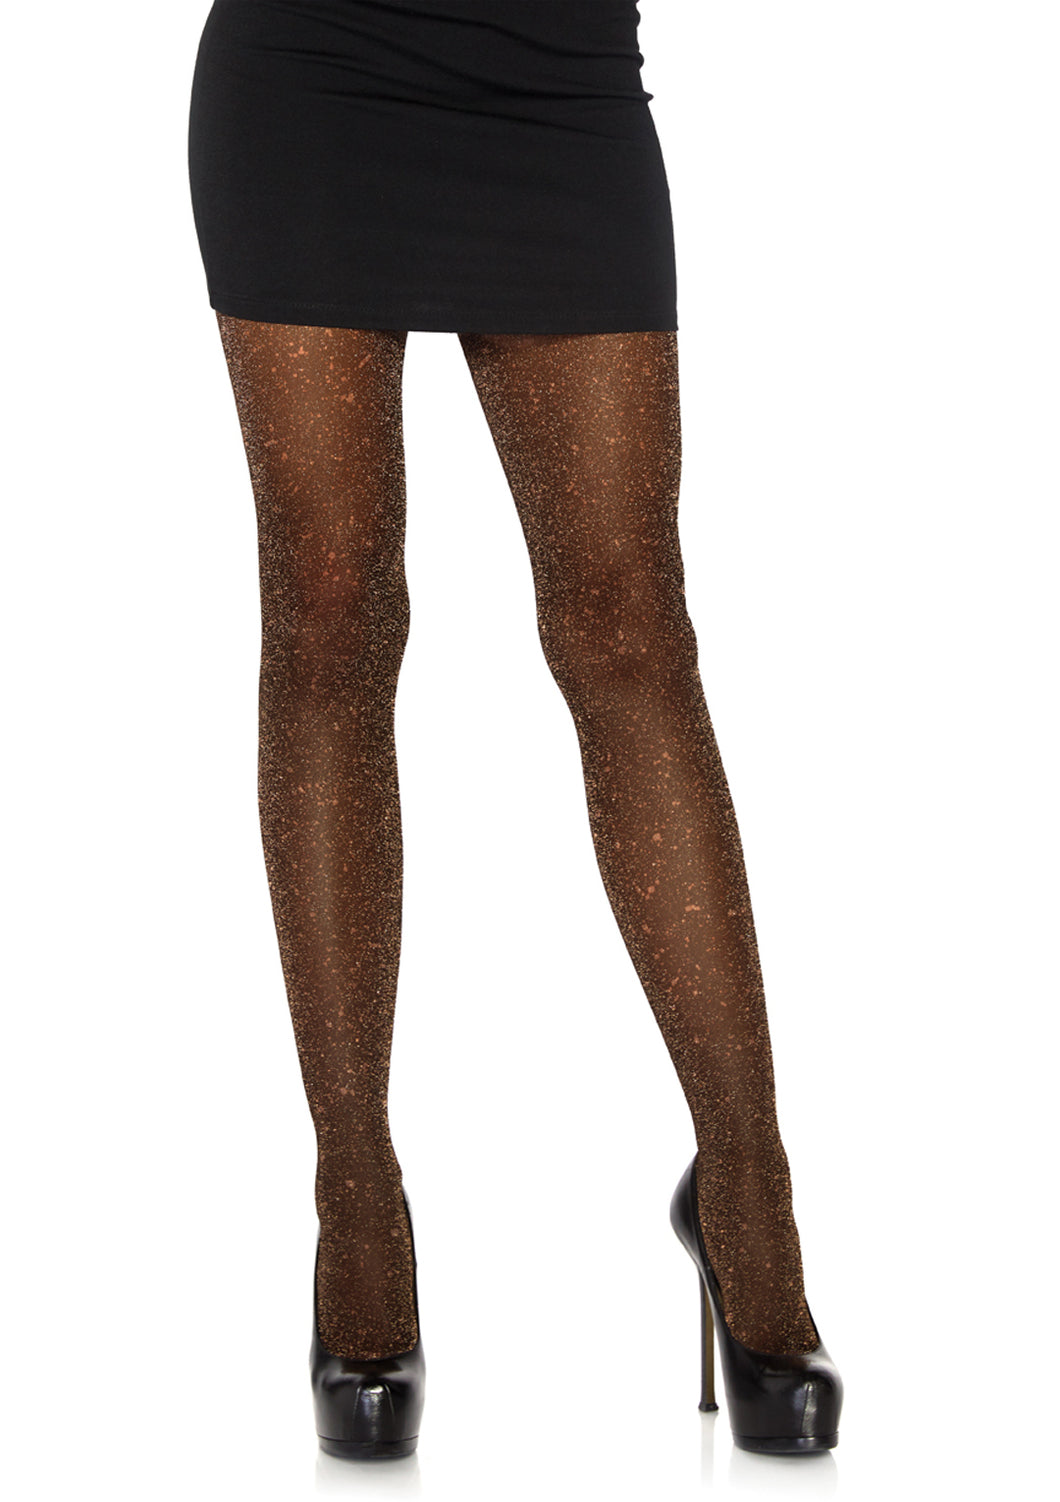 Leg Avenue Shimmer Tights - asst colors